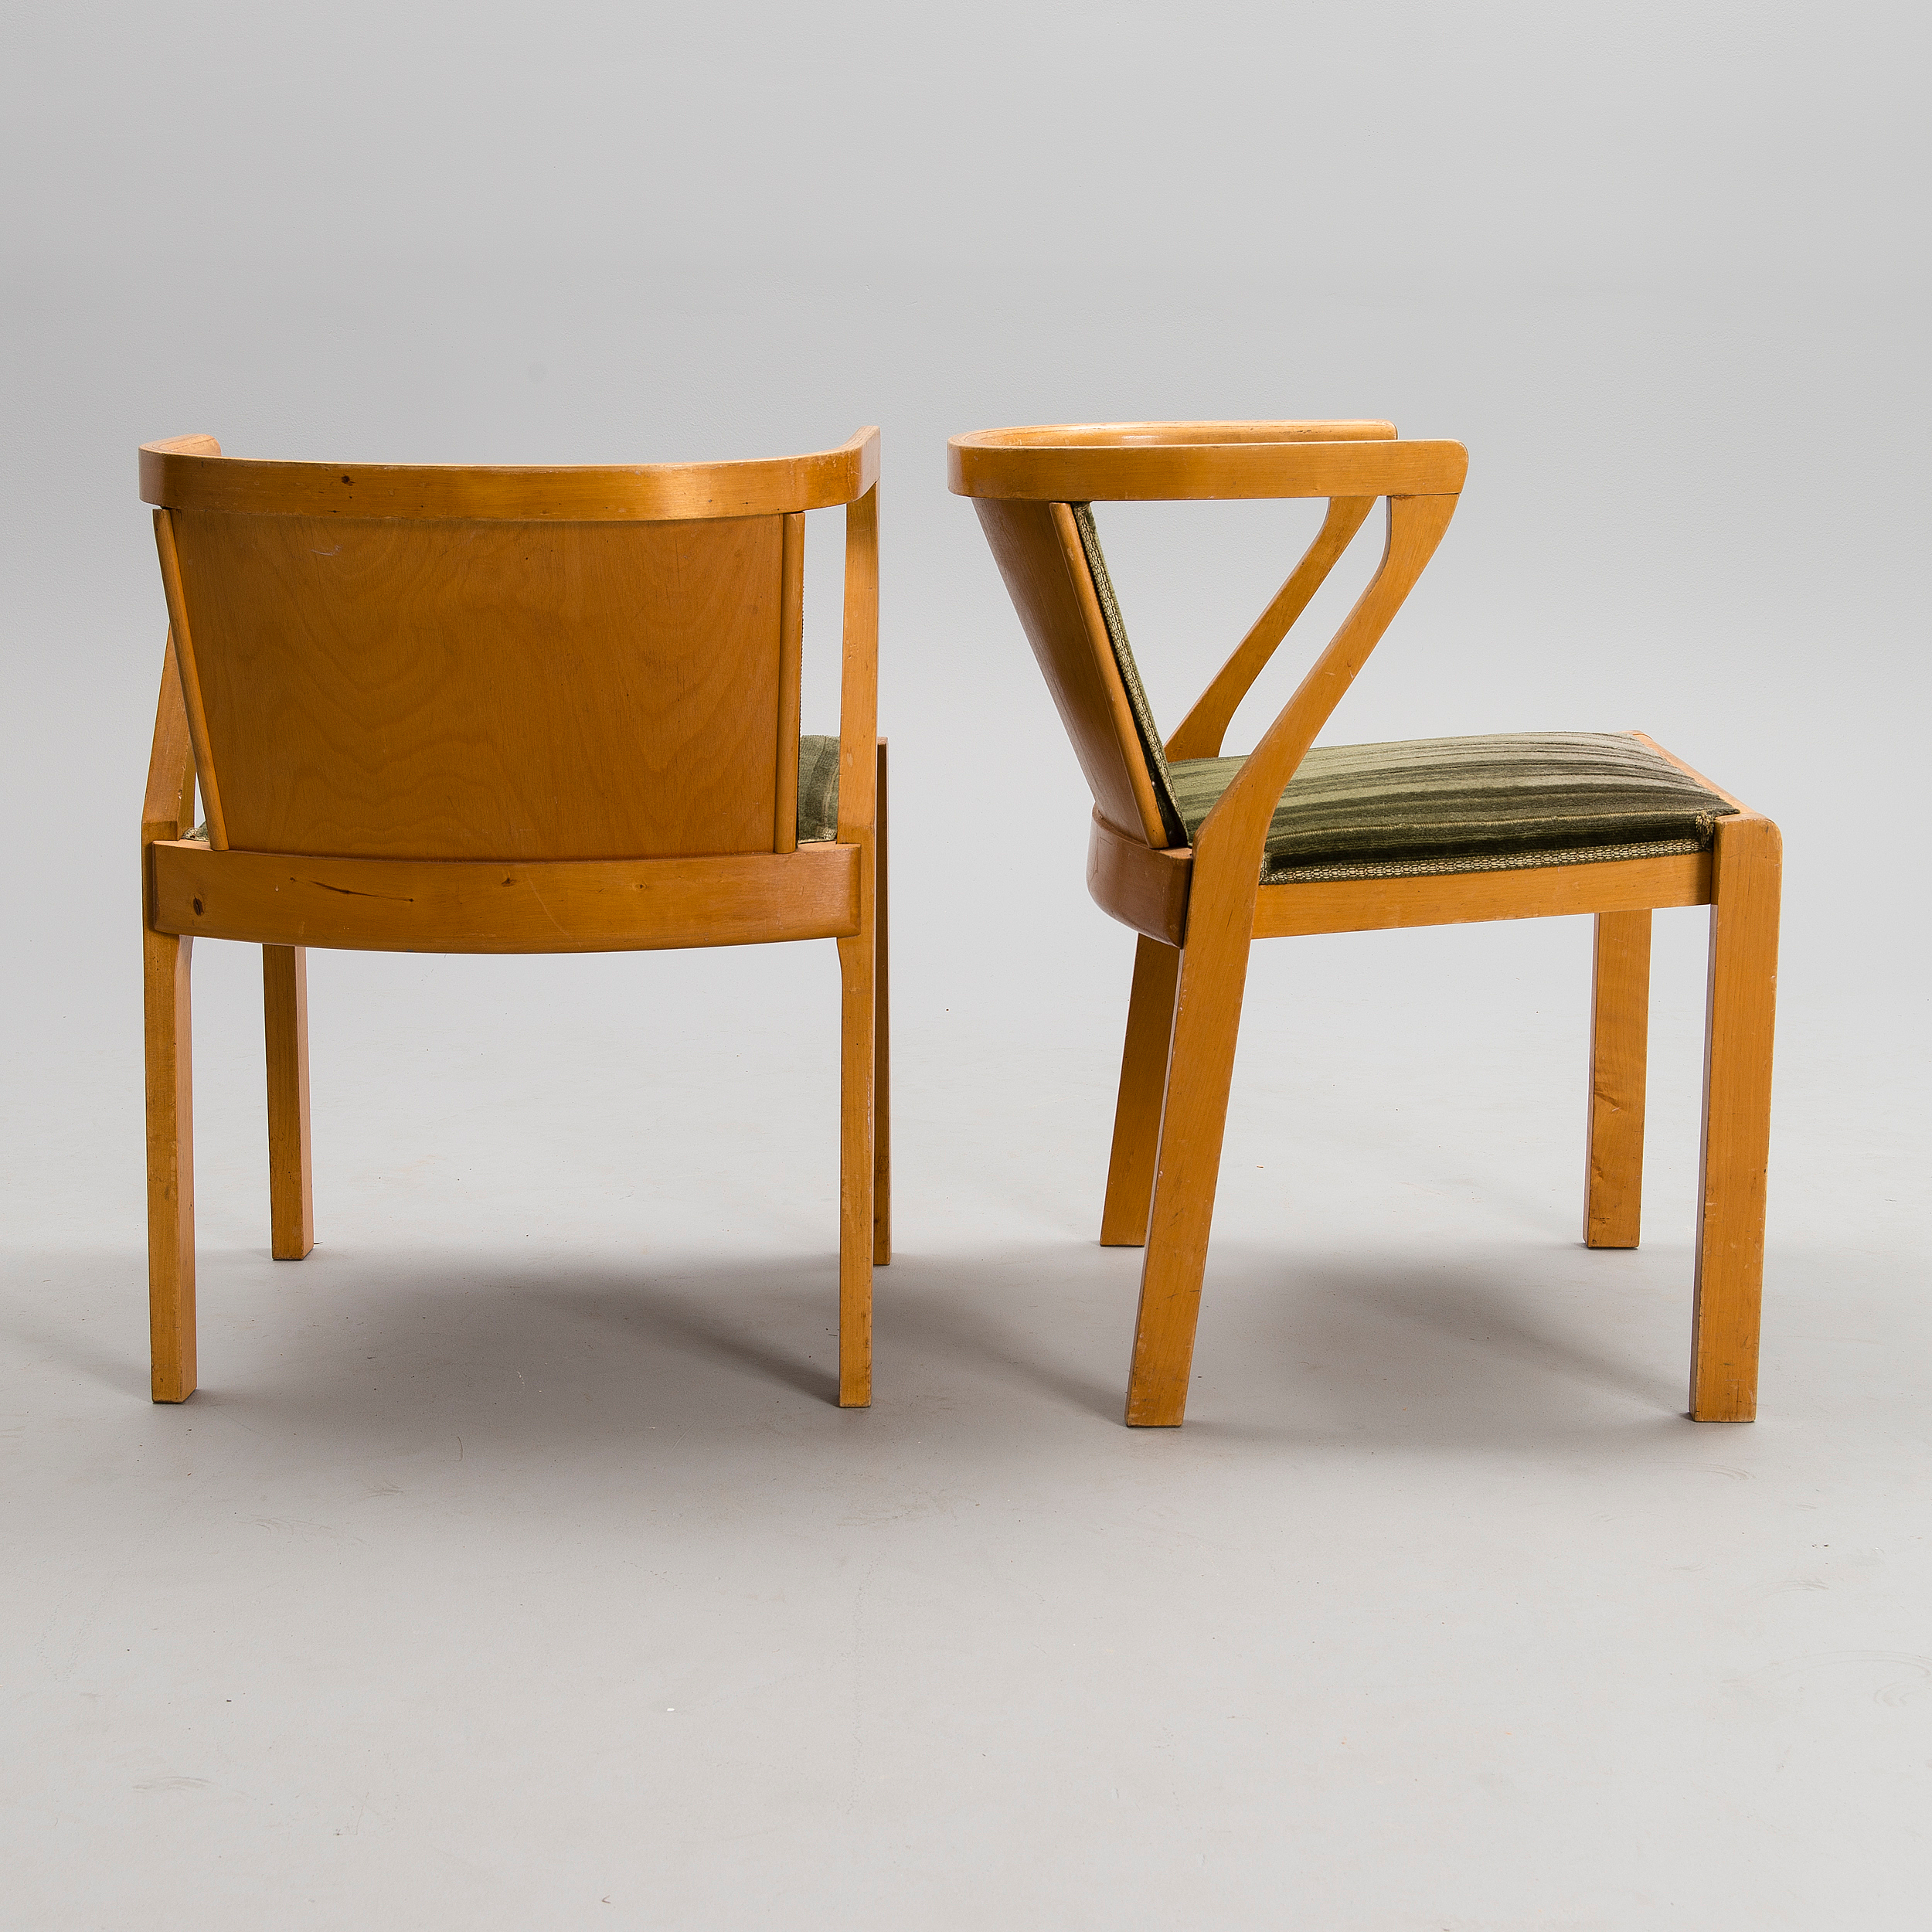 ALVAR AALTO, A PAIR OF ARMCHAIRS, model 2, Artek, mid 20th ...